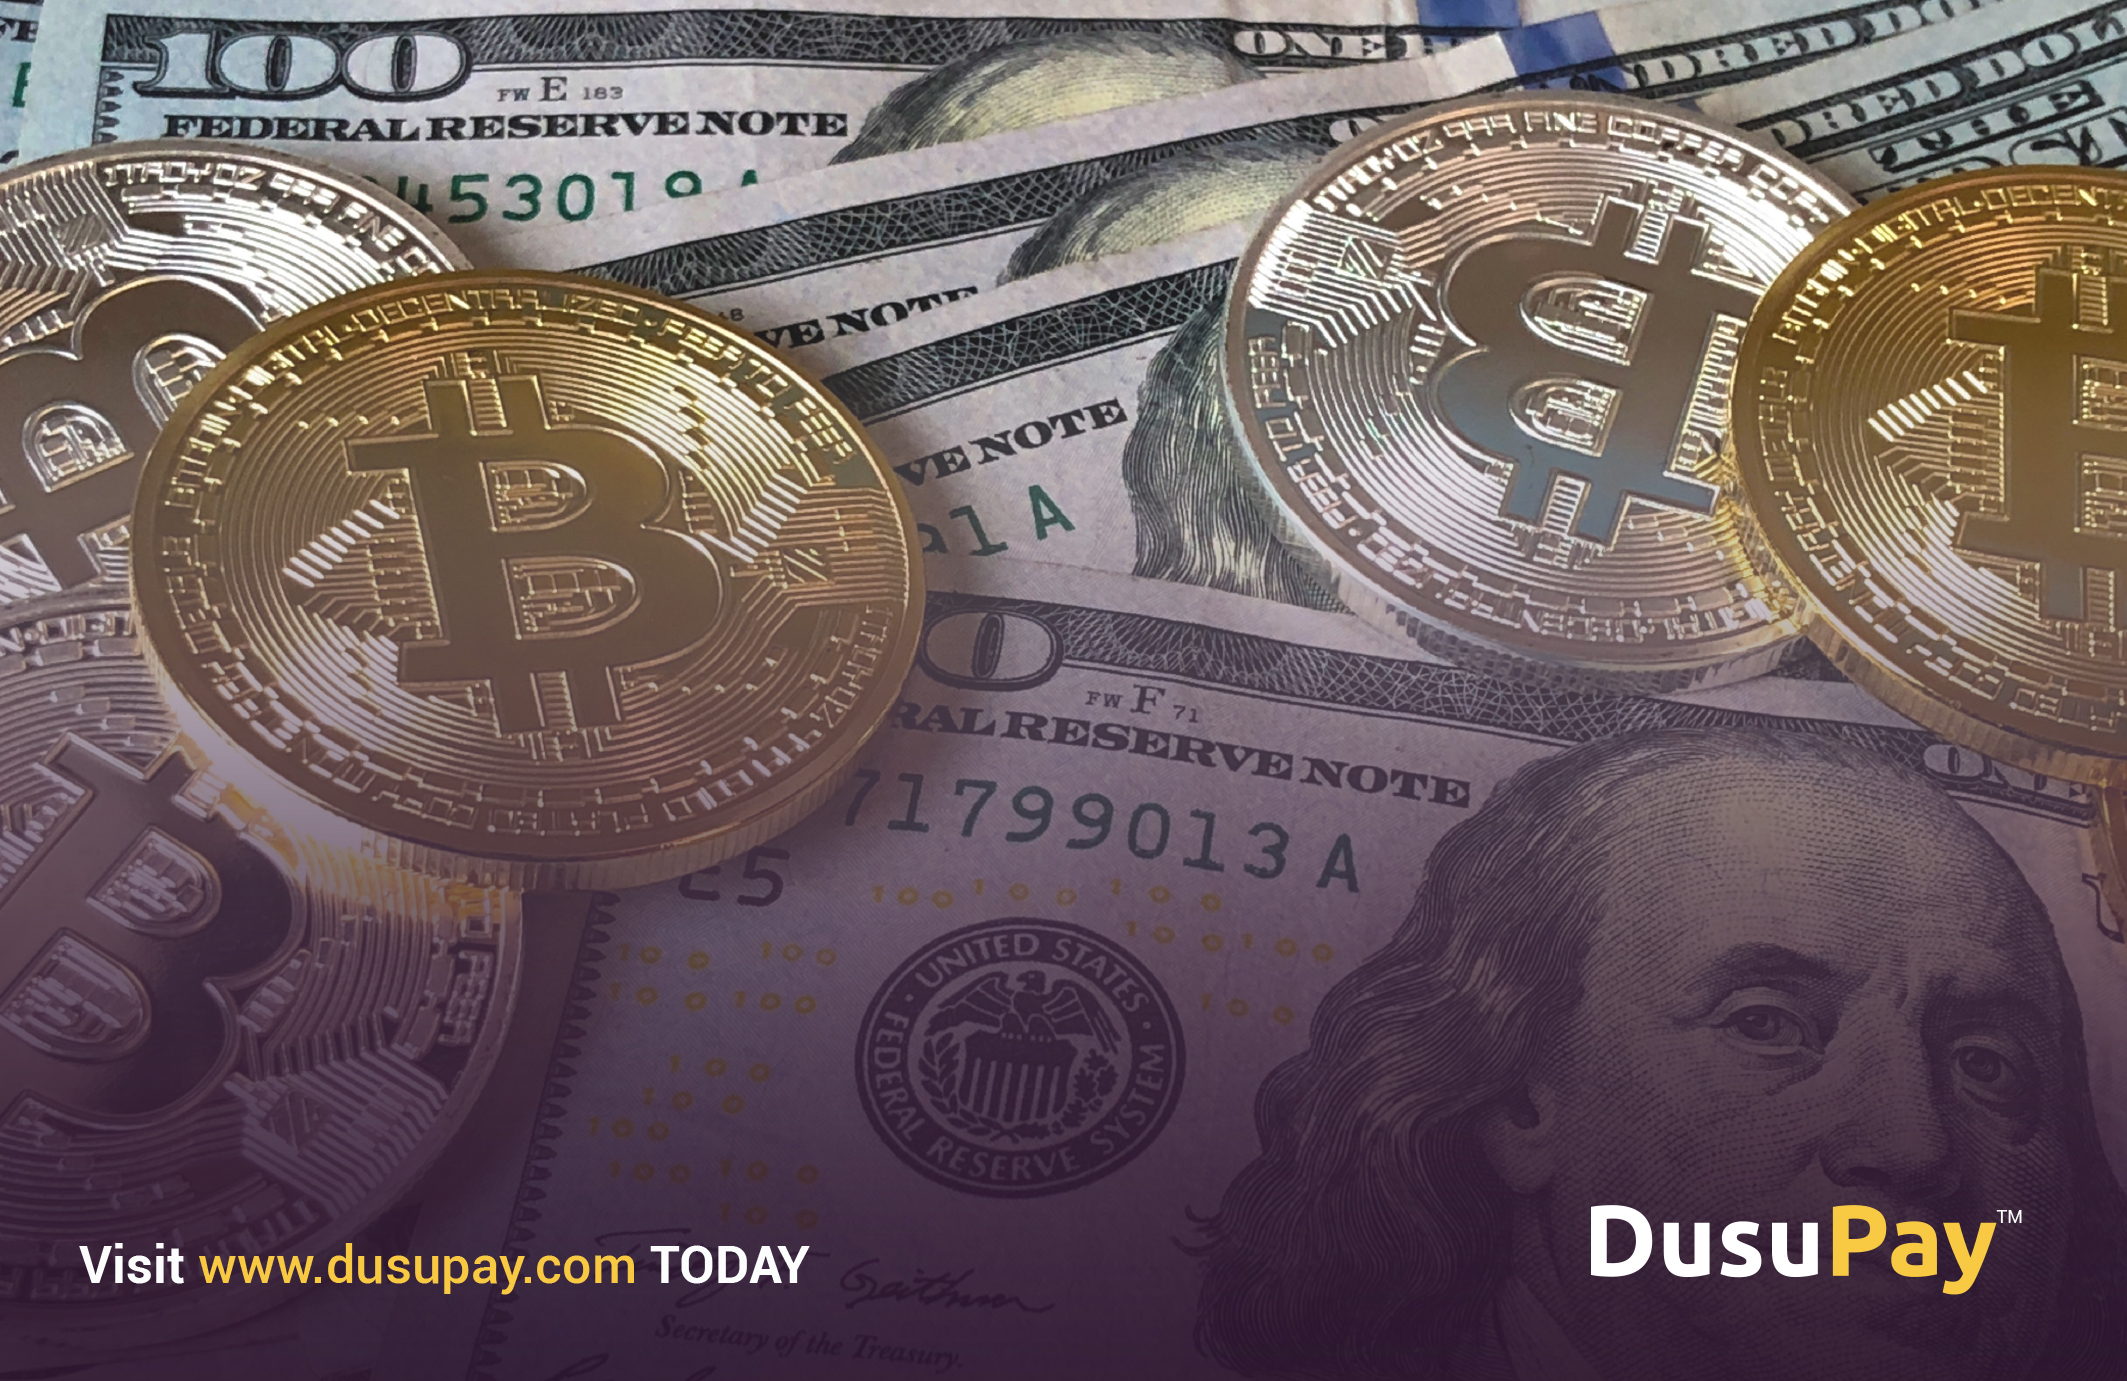 How to use DusuPay to enable you purchase and withdraw your cryptocurrency in Africa